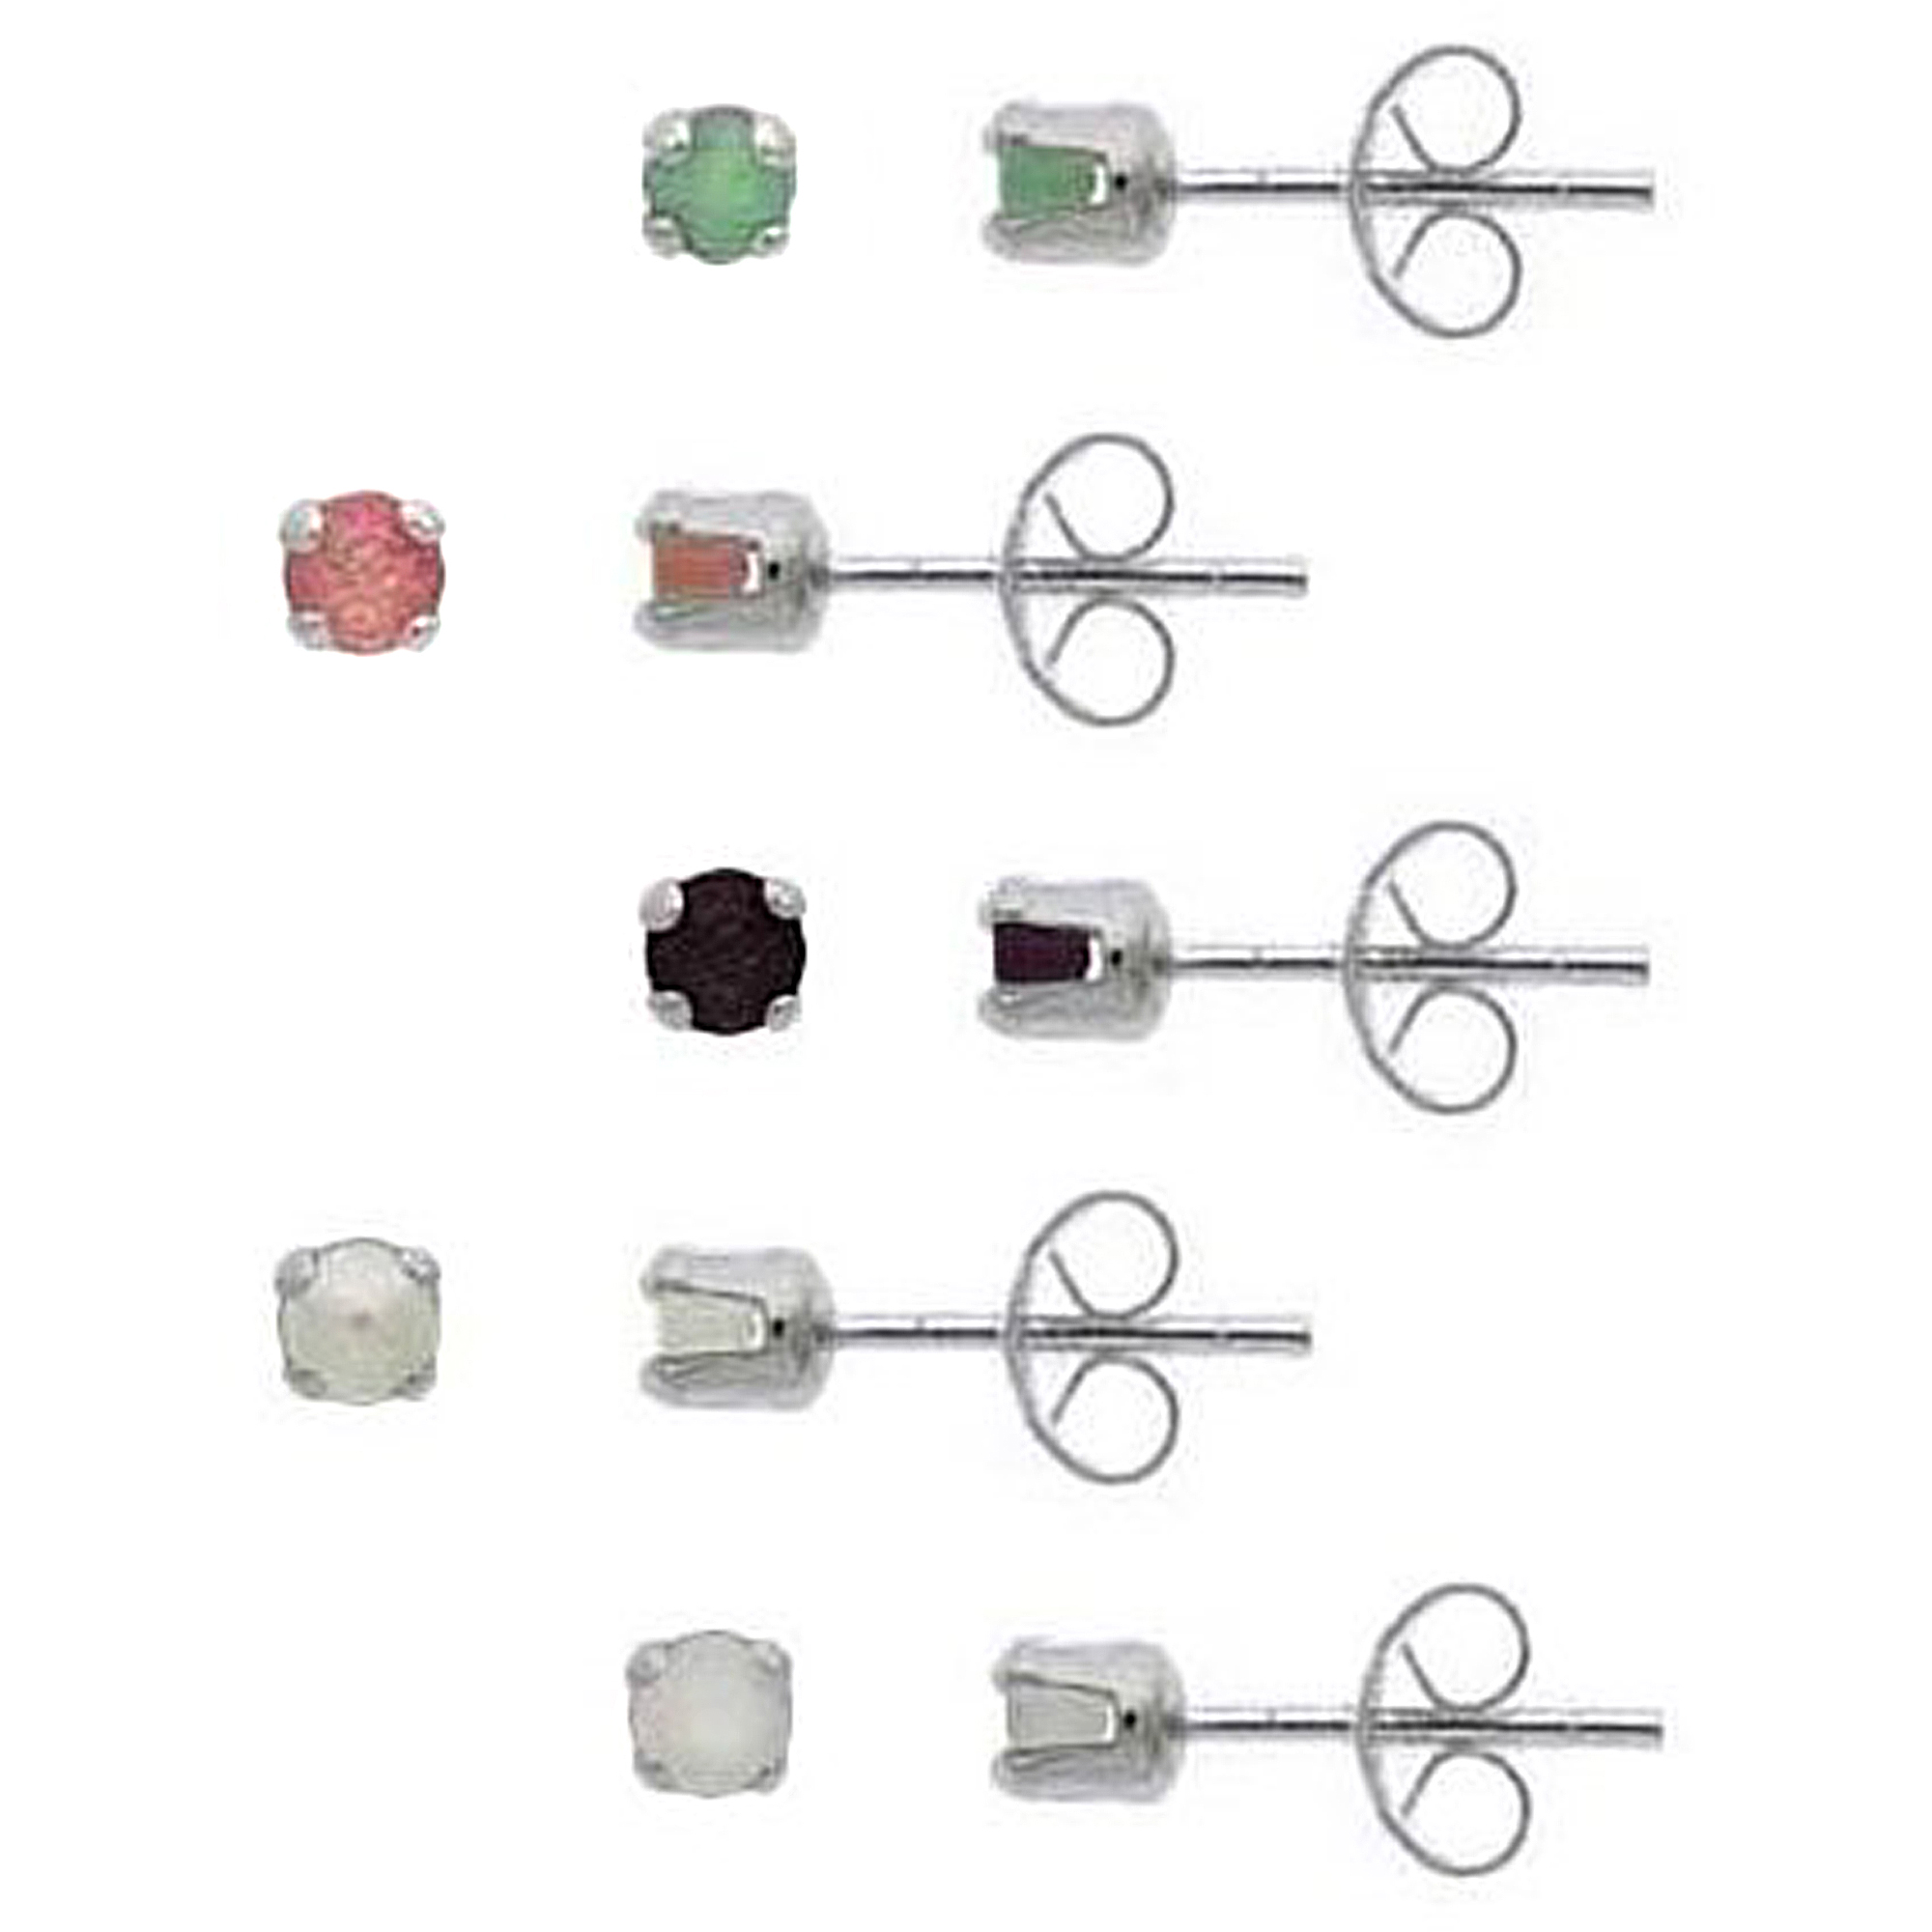 3mm Round Genuine Ruby, Emerald, Sapphire, Opal, Pearl Sterling Silver Stud Earring Set